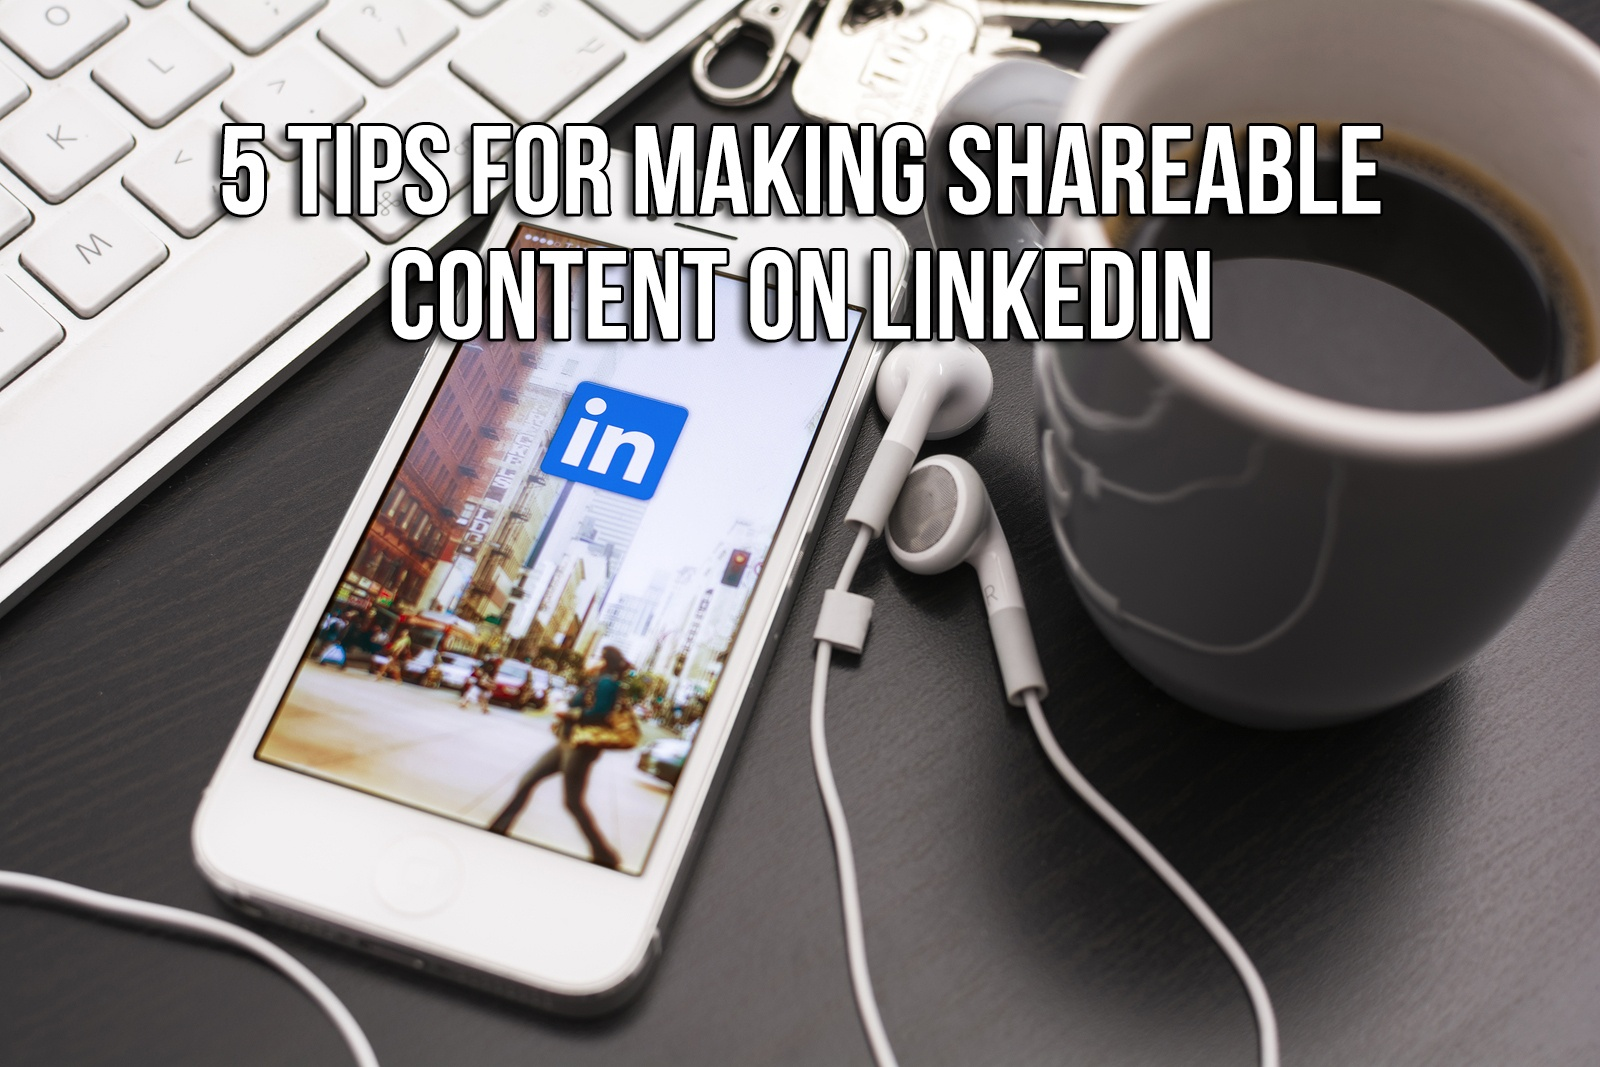 5 Tips for Making Shareable Content on LinkedIn